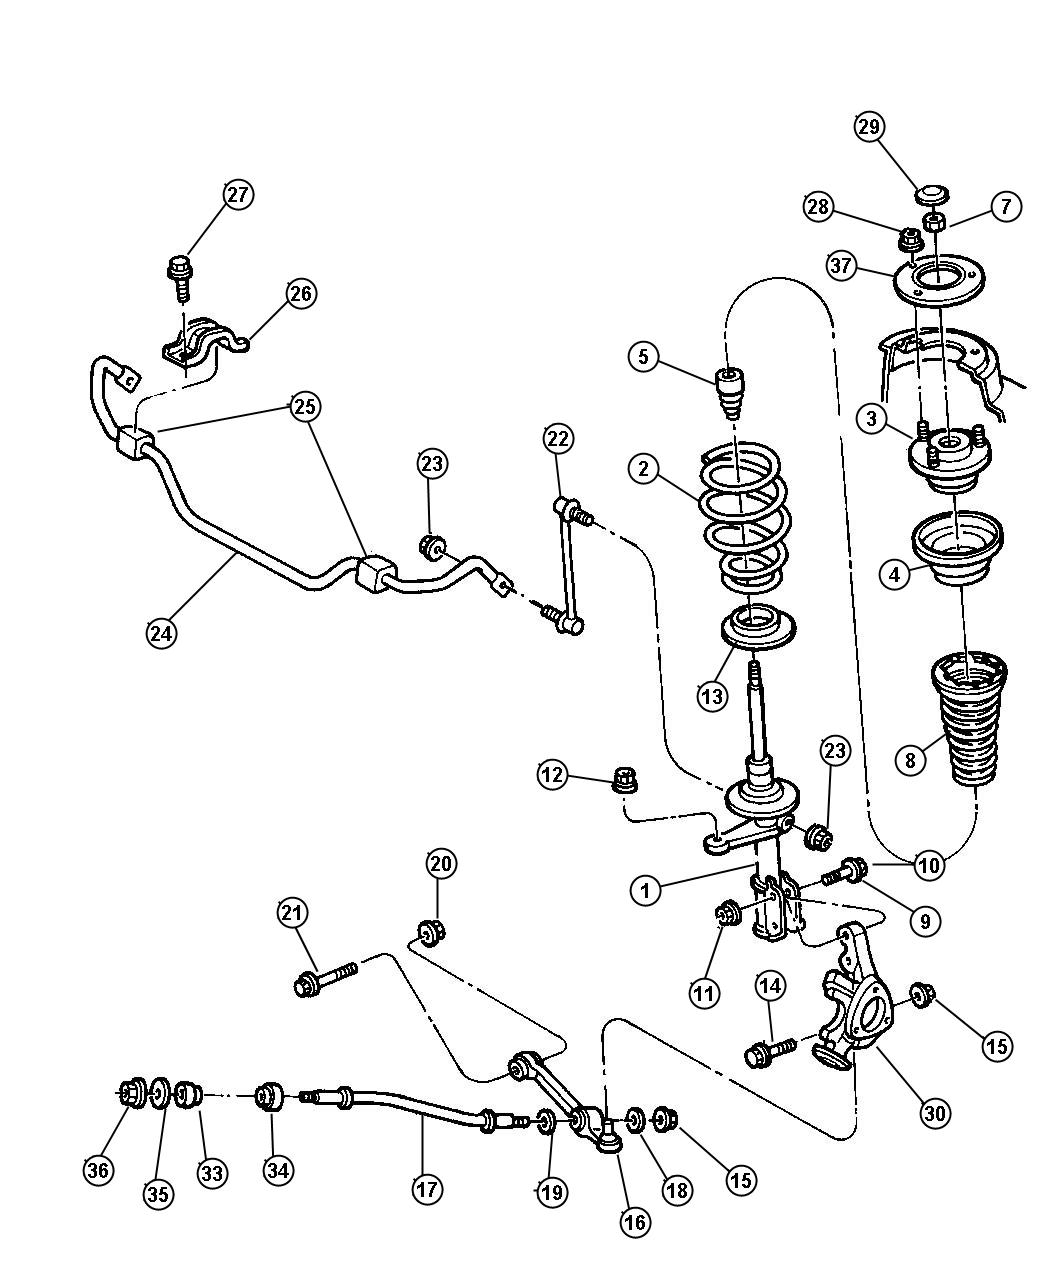 hight resolution of 2000 dodge stratus rear end suspension diagram wiring diagram meta 2003 dodge stratus rear suspension diagram